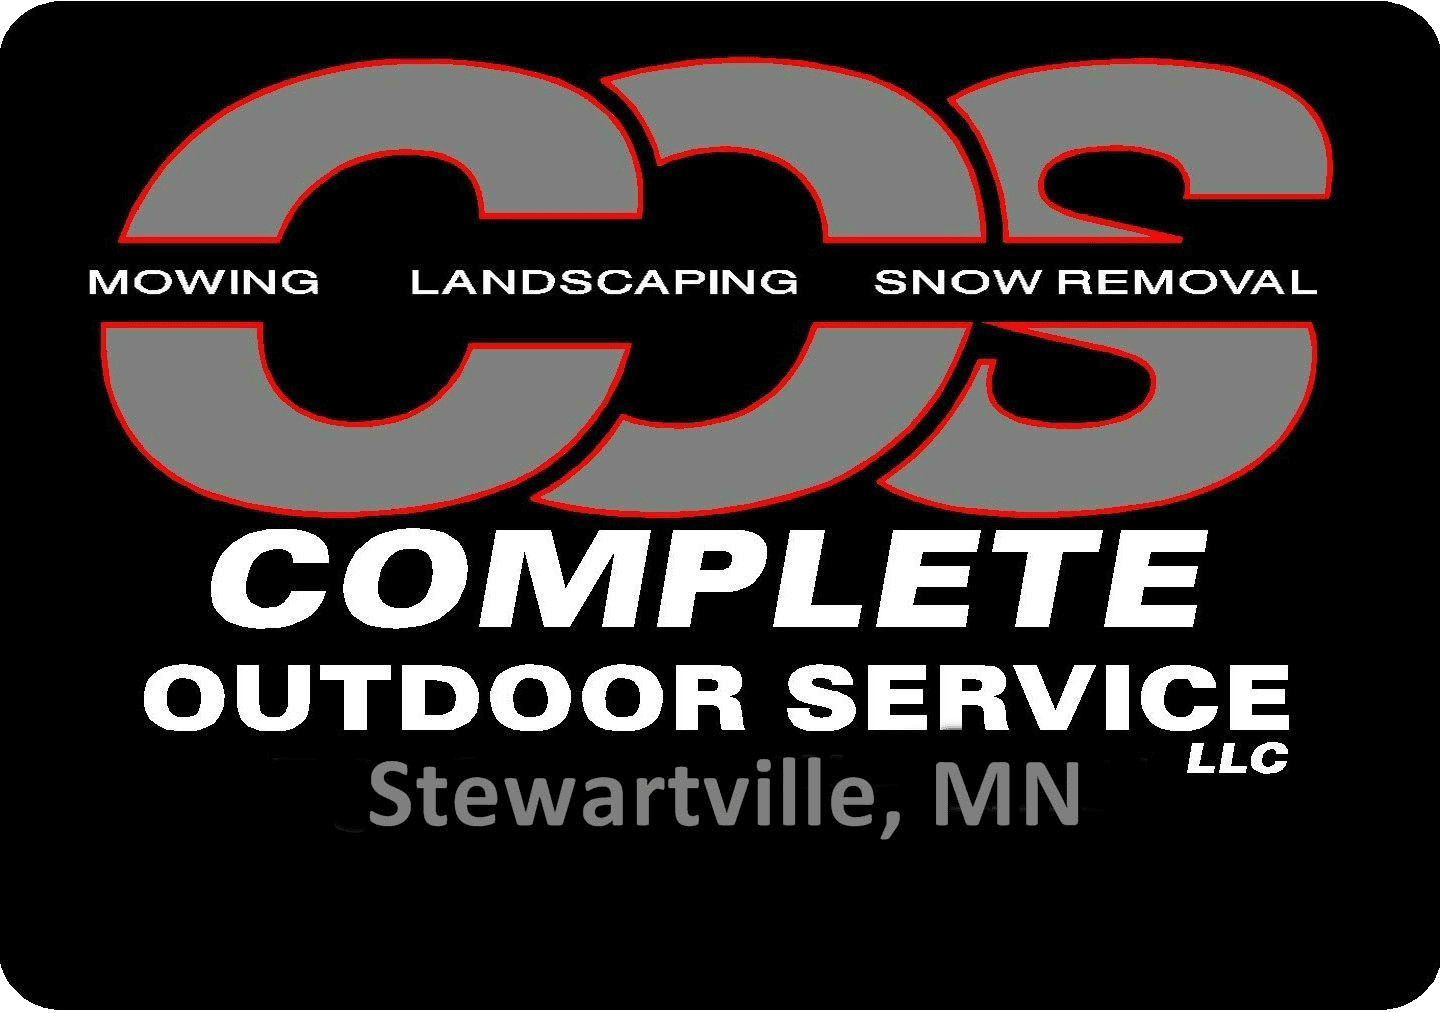 Complete Outdoor Service LLC - logo